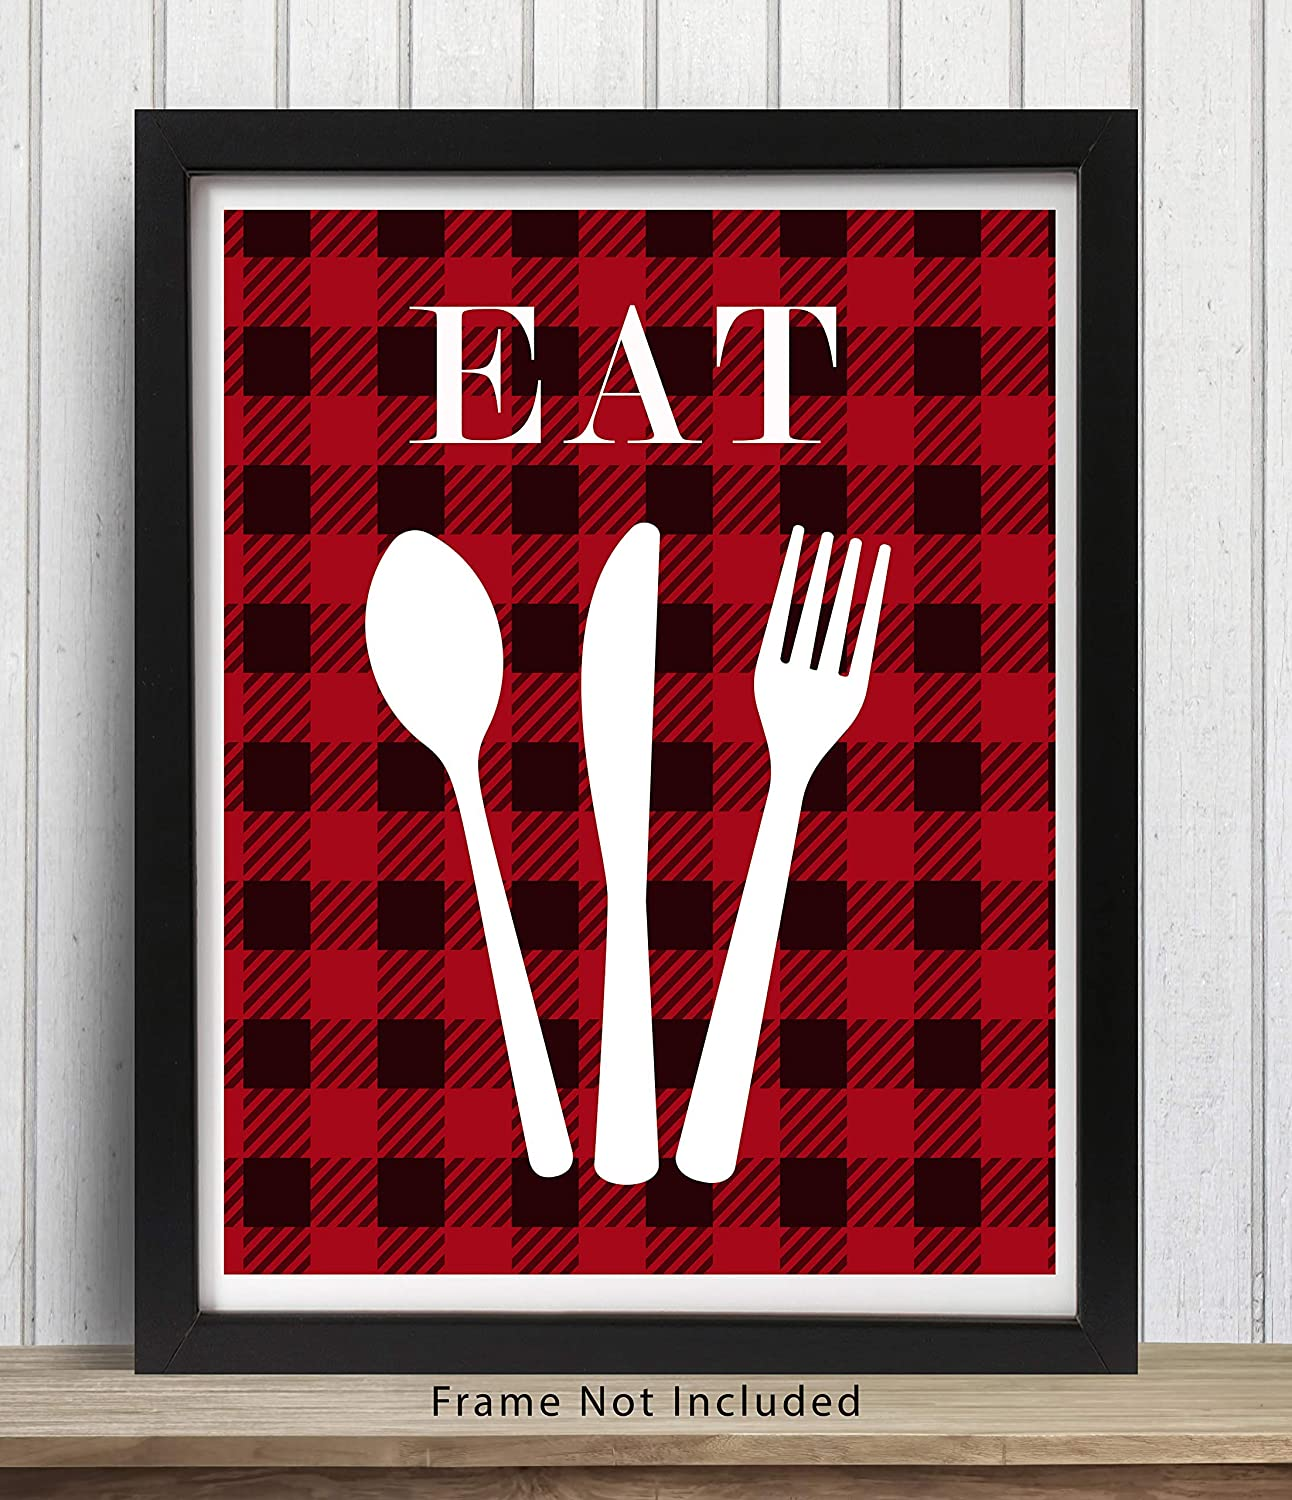 Amazon Com Eat Kitchen Wall Art Sign 11x14 Unframed Black Red White Buffalo Plaid Print Perfect For Rustic Modern Farmhouse Country Decor Handmade